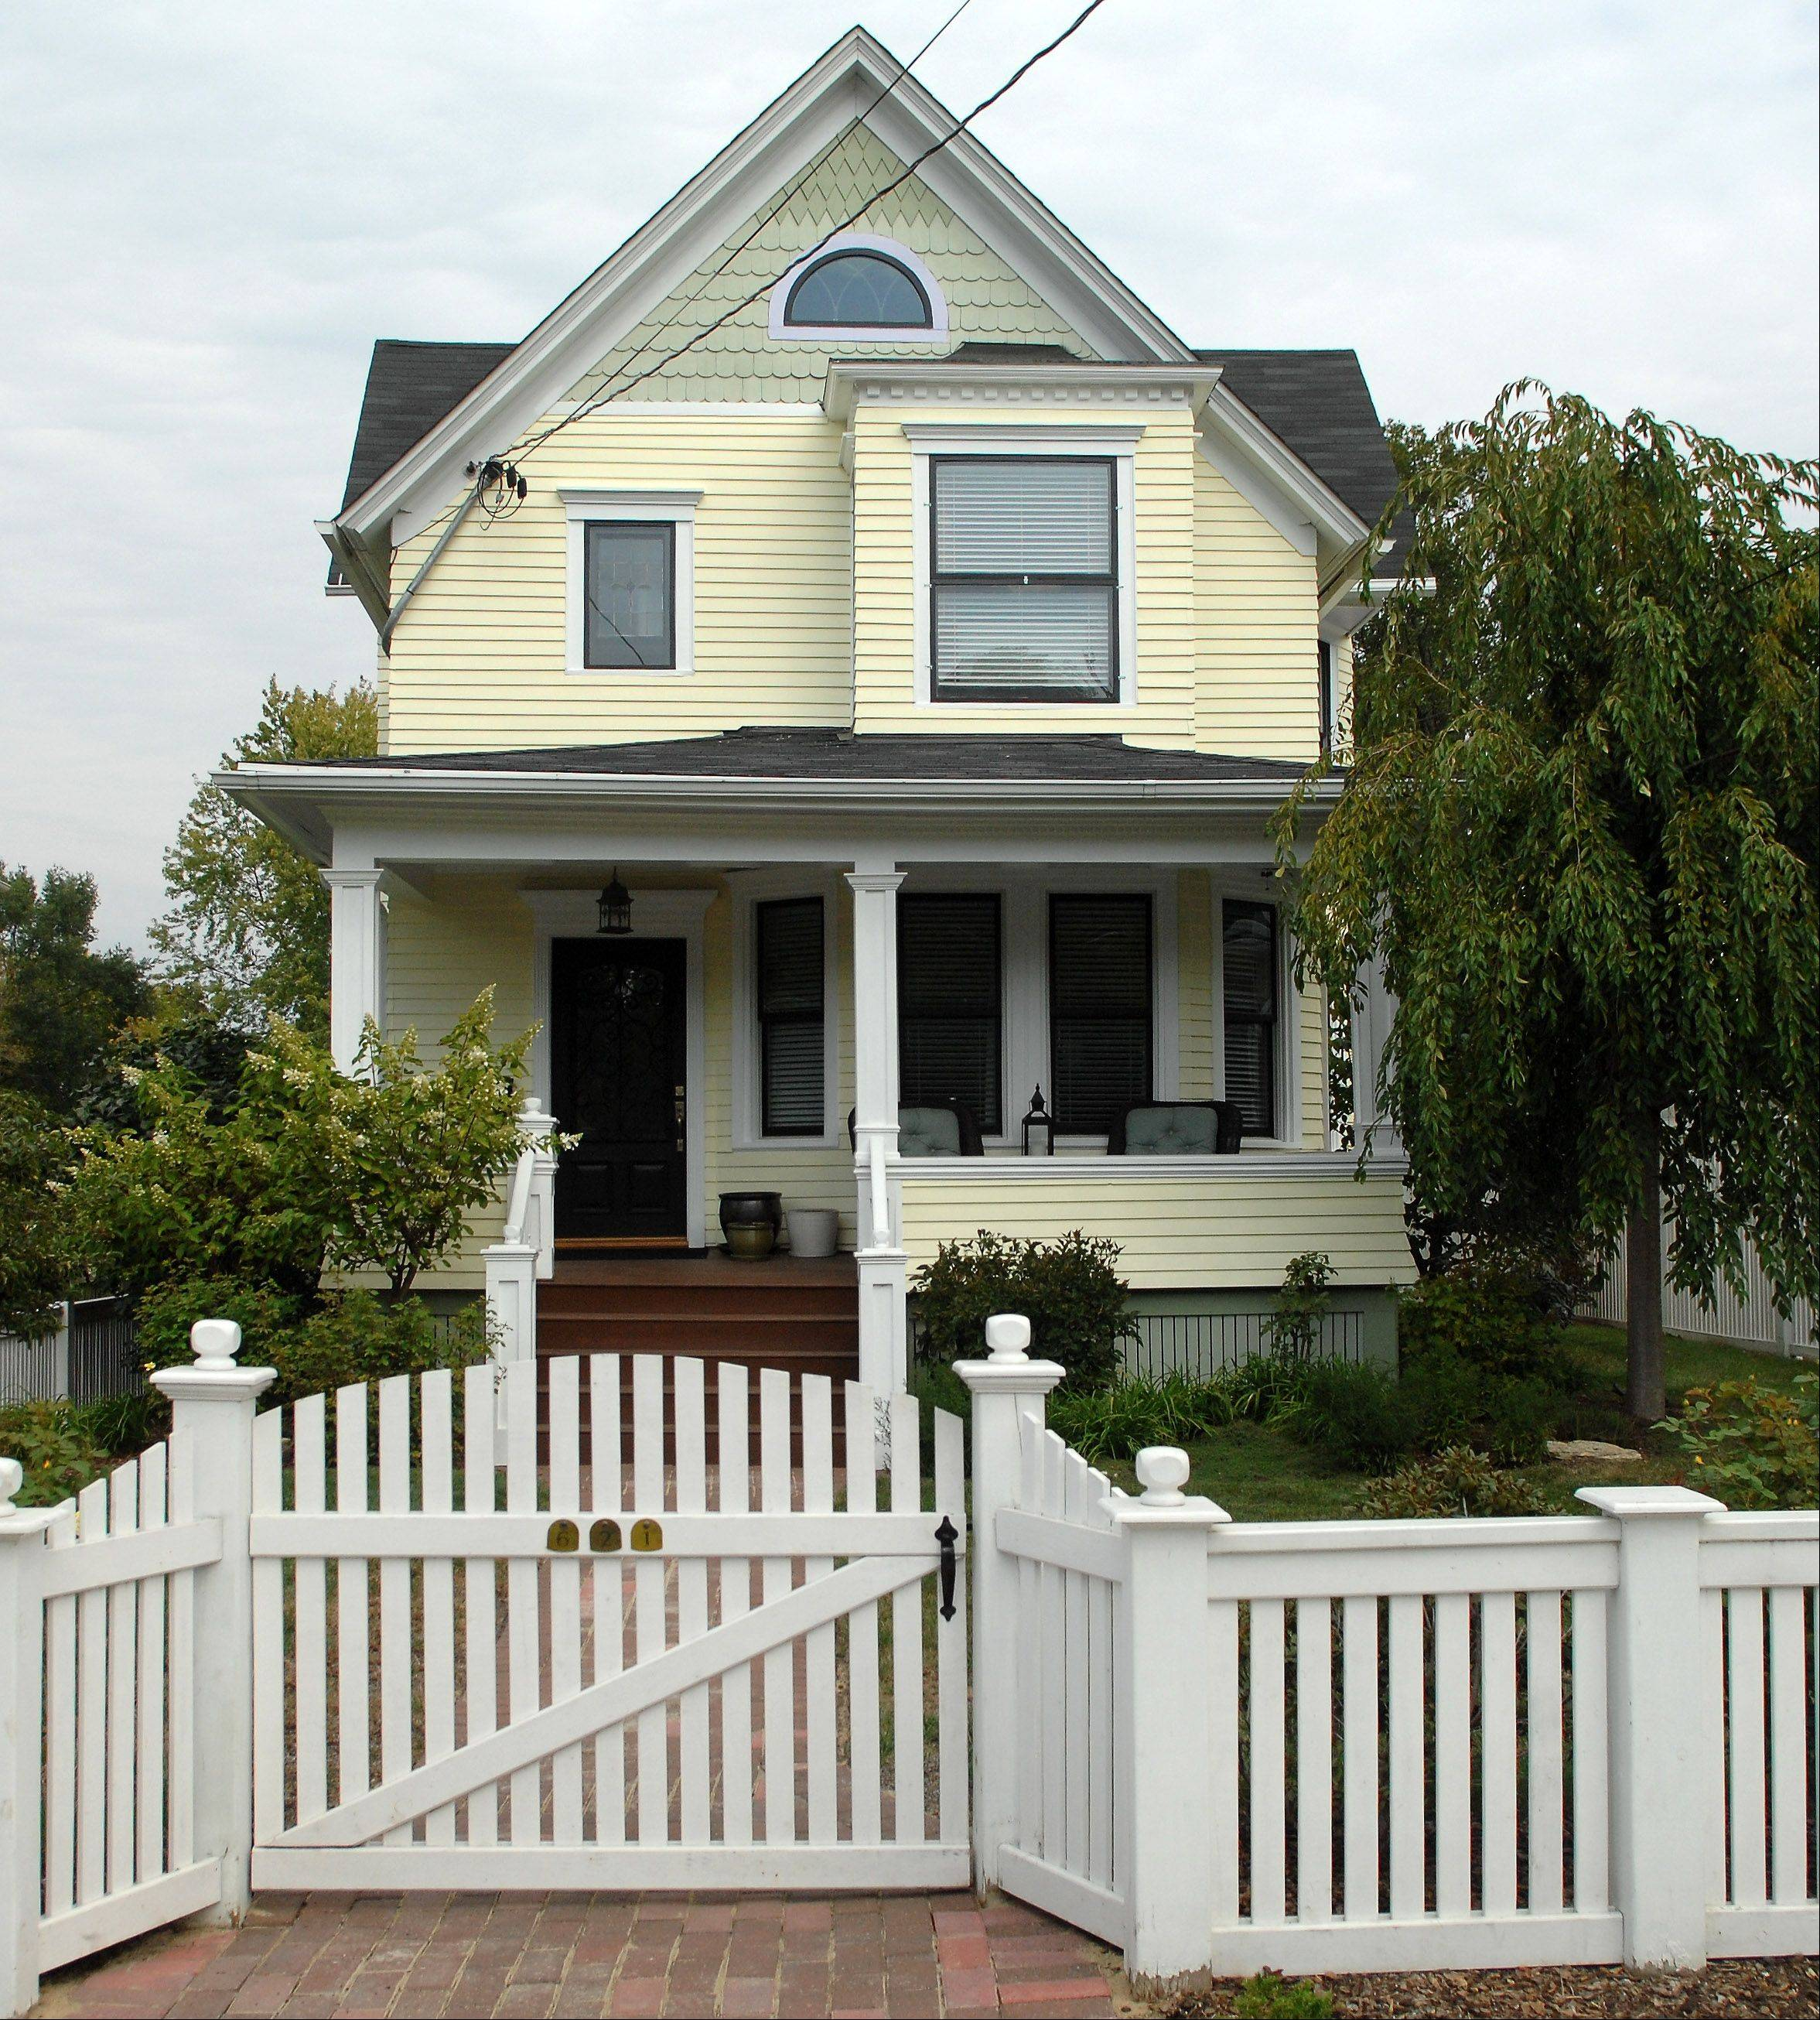 The home at 621 Main St., Batavia, is a completely renovated folk Victorian home.